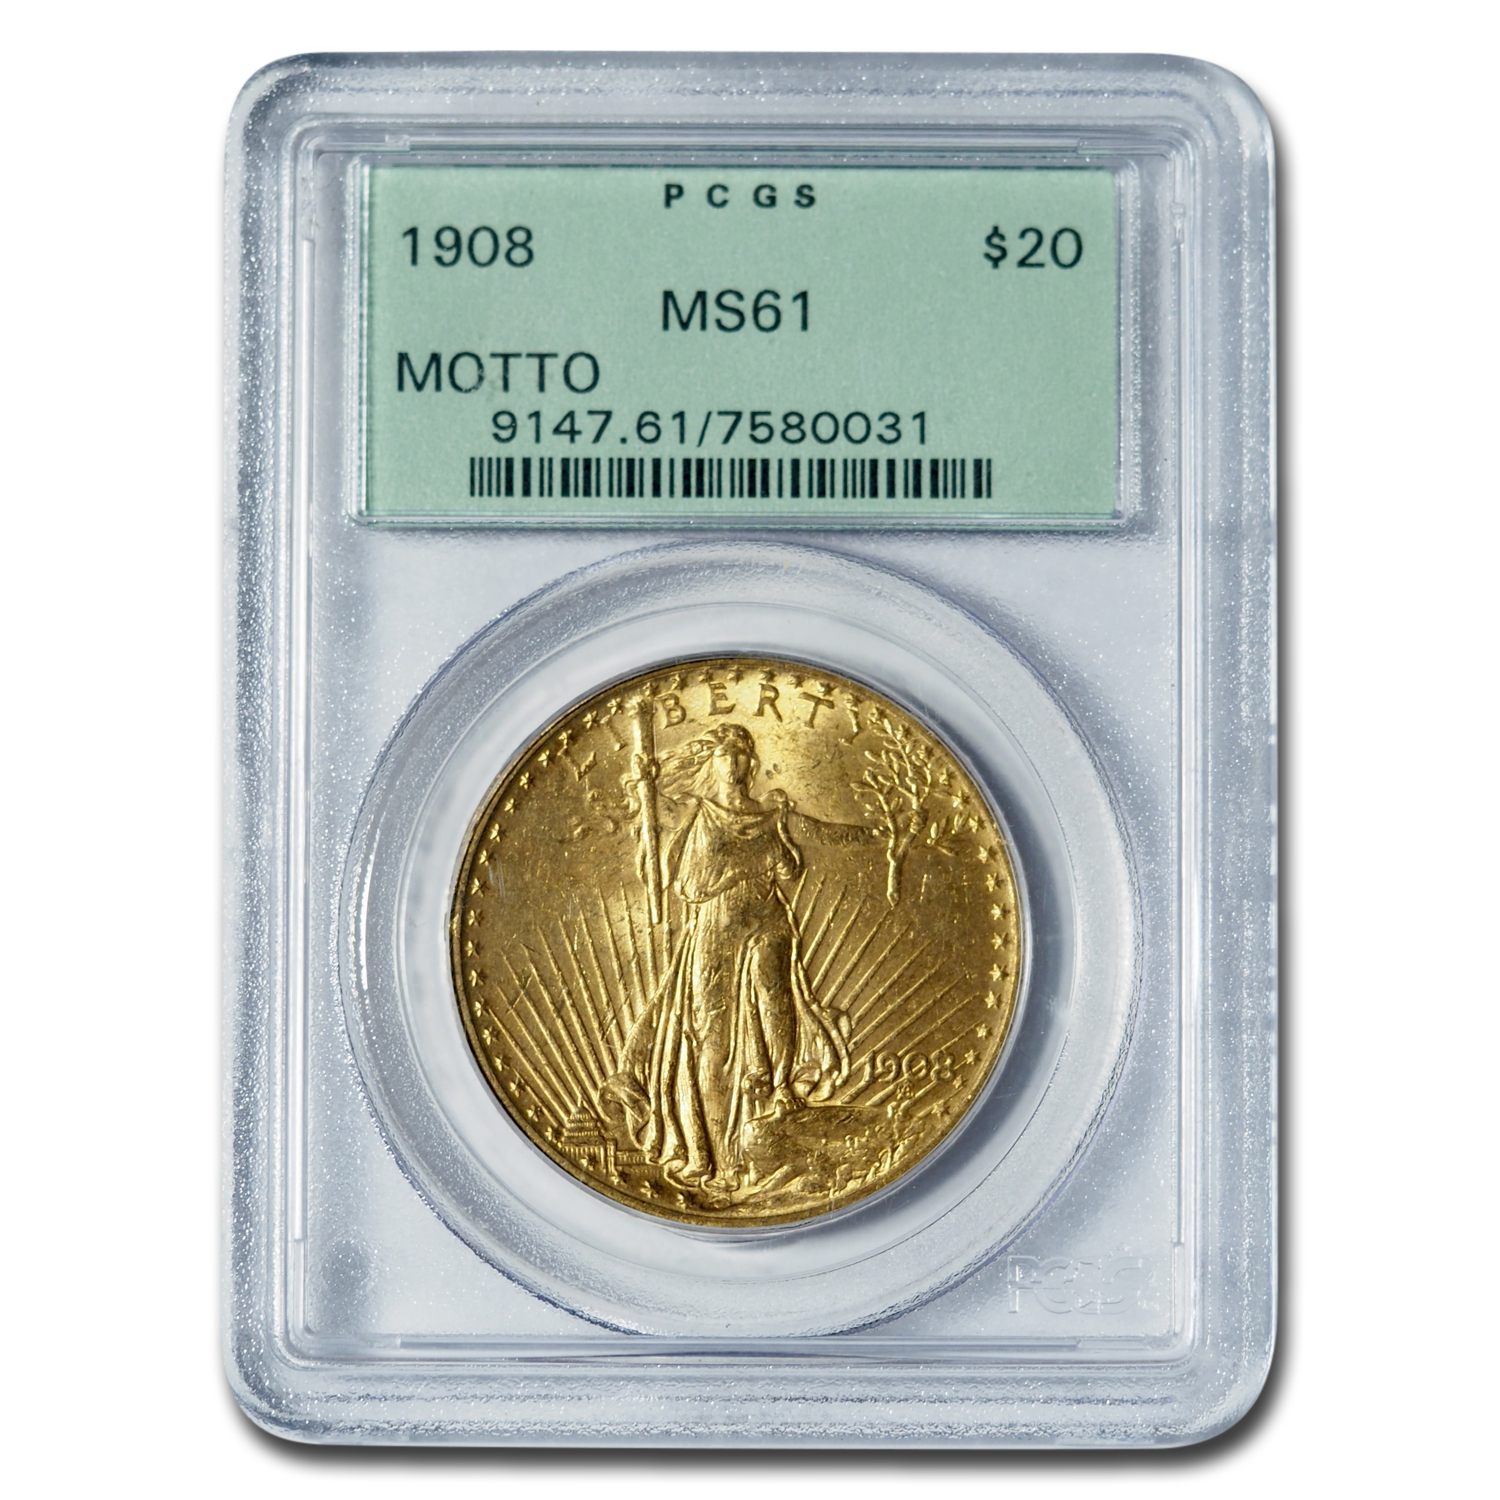 1908 $20 St. Gaudens Gold MS-61 PCGS (w/Motto)